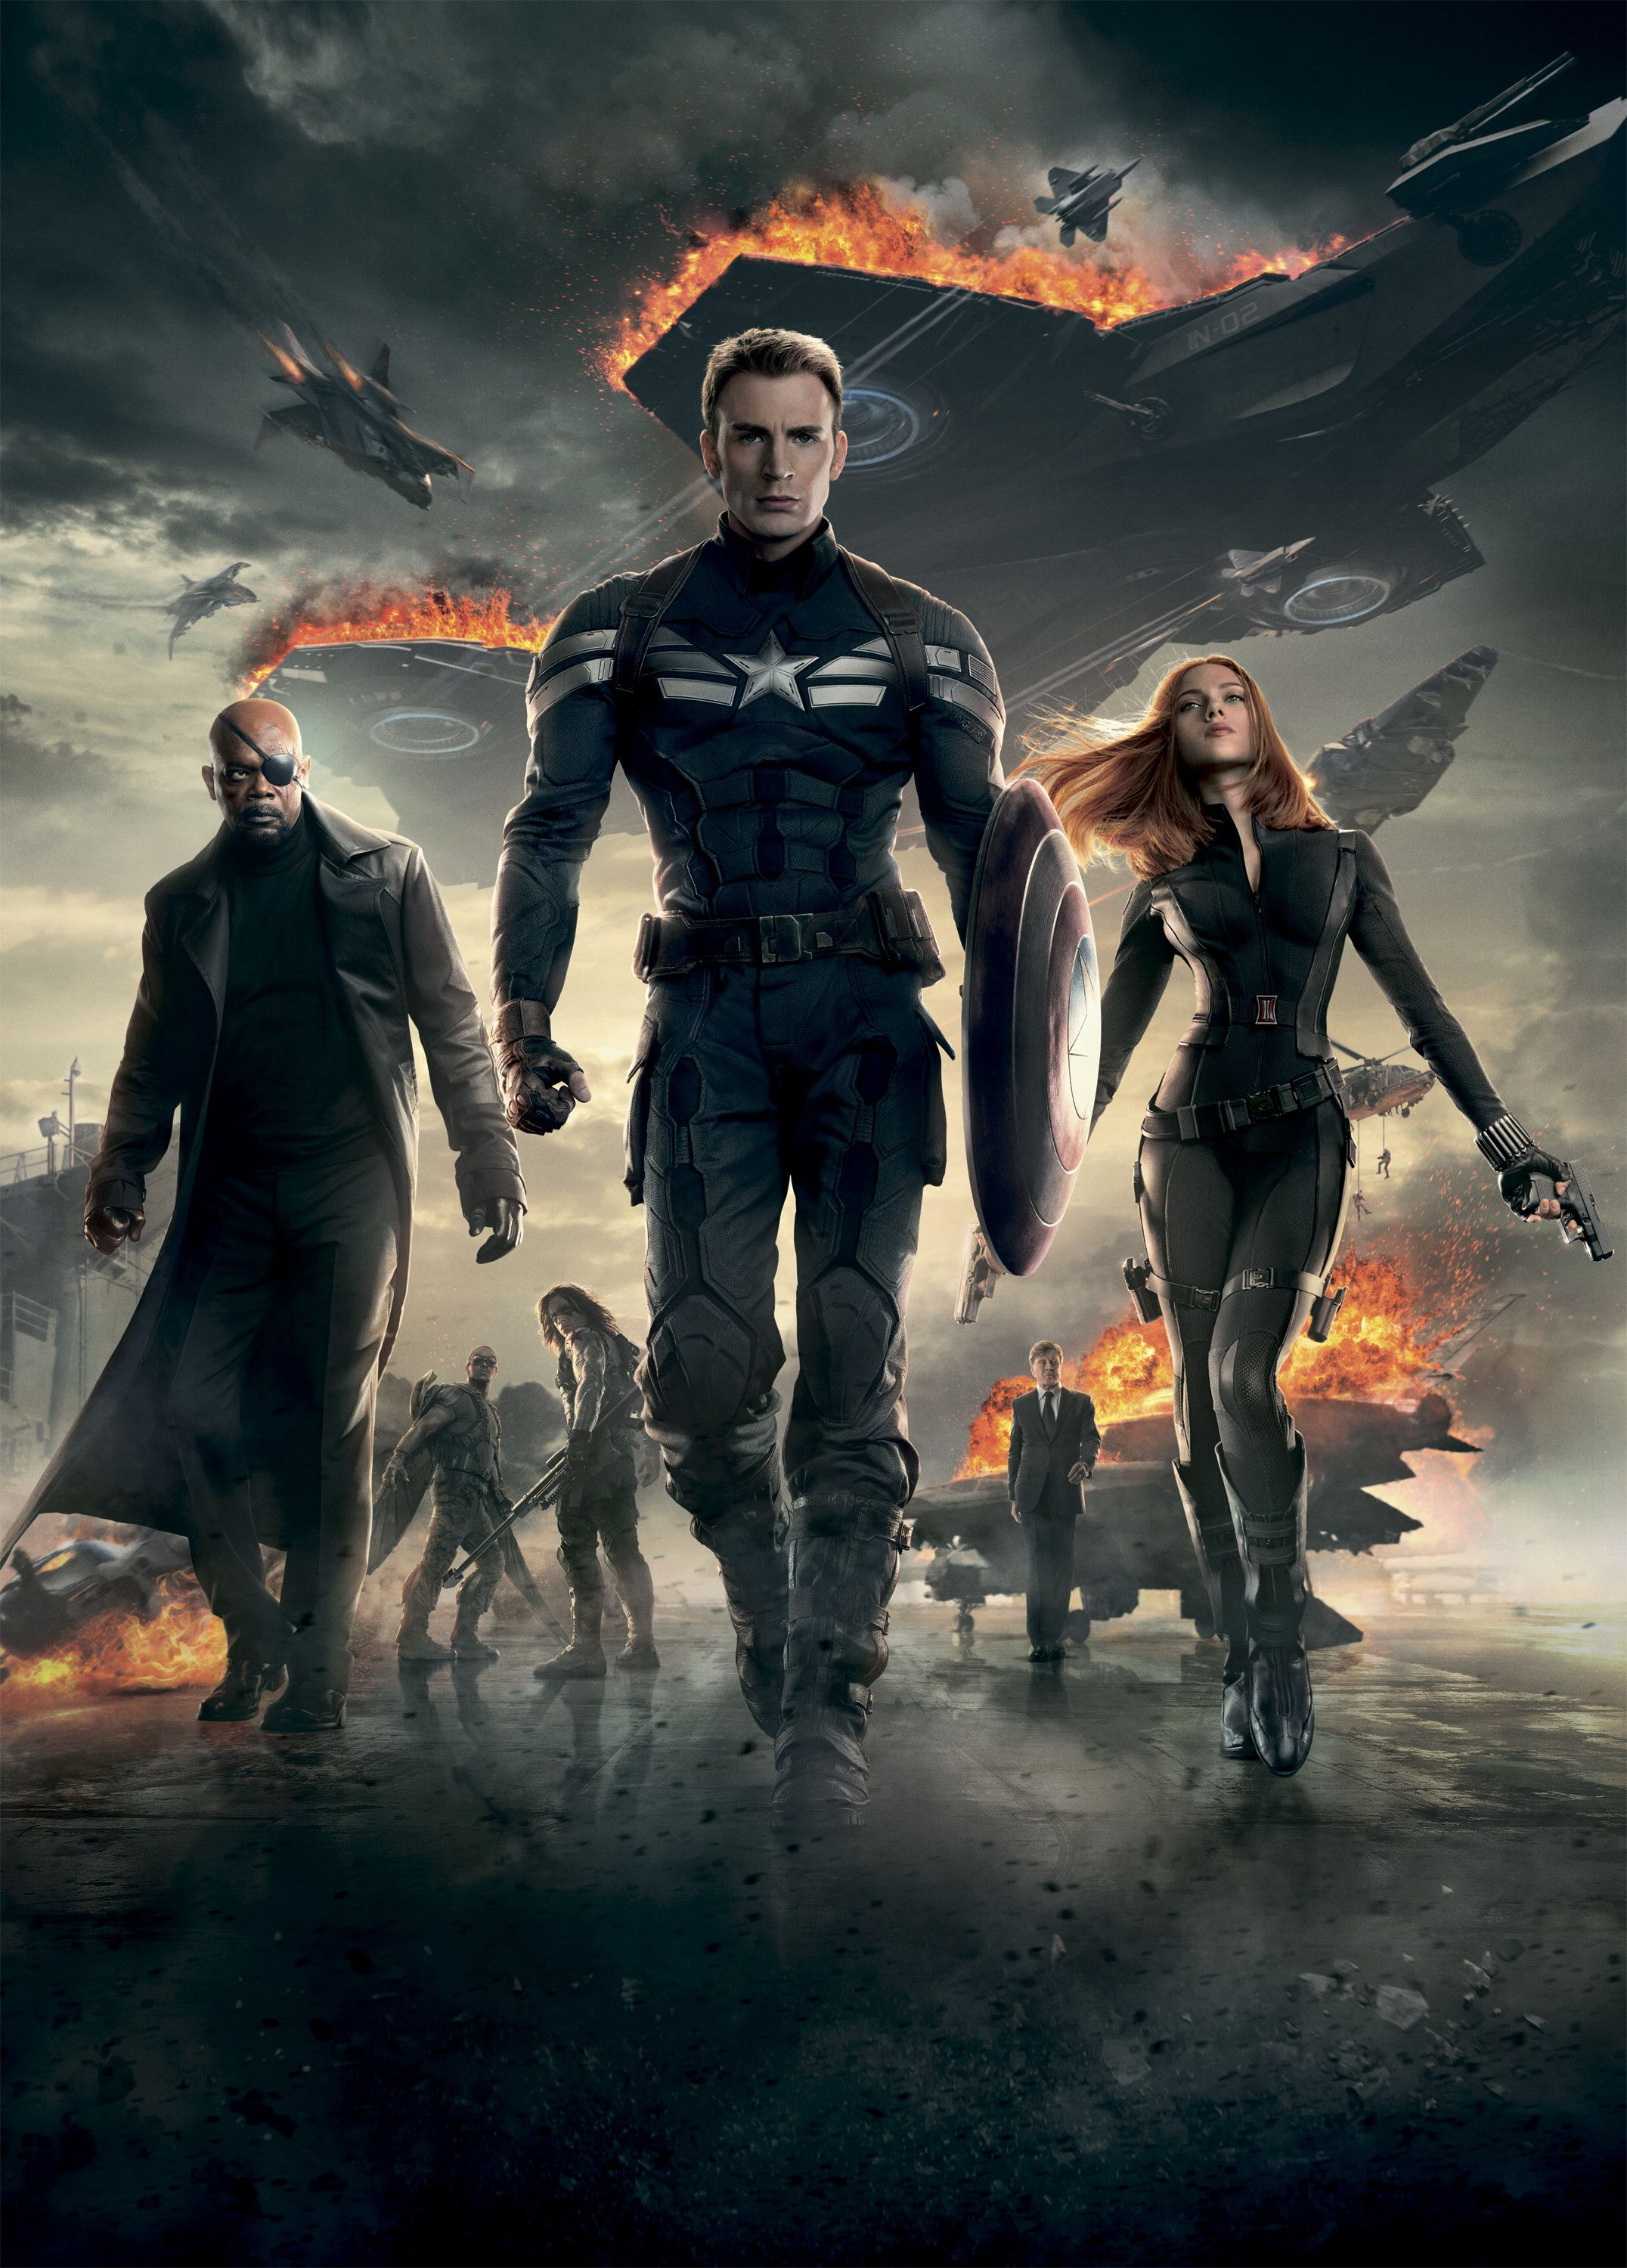 winter soldier full movie free download